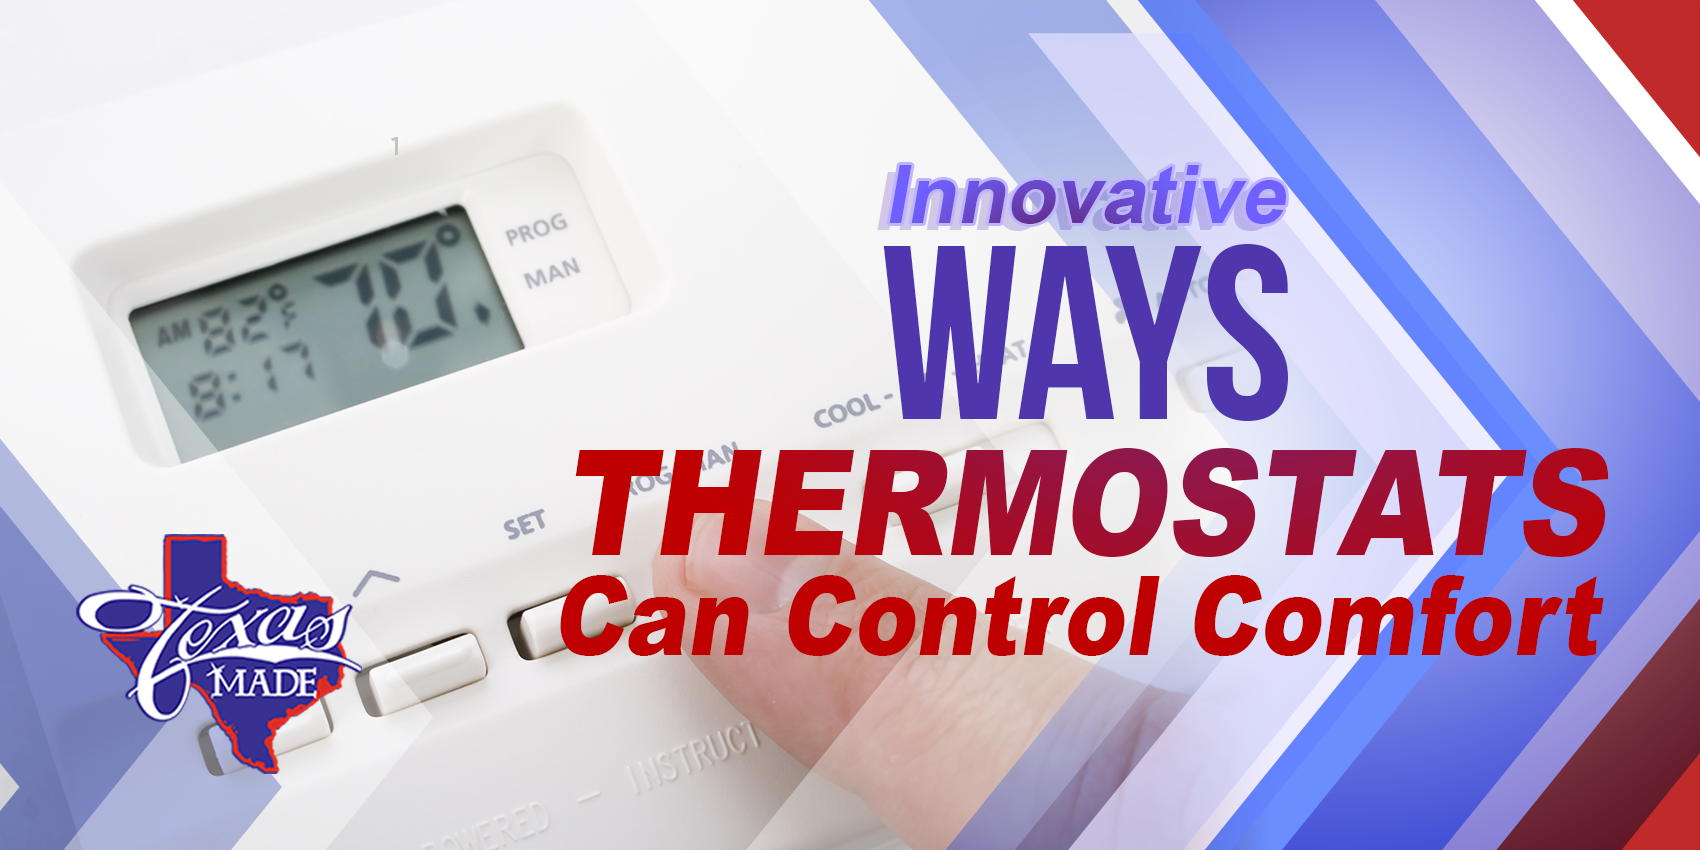 Innovative Ways Thermostats Can Control Comfort